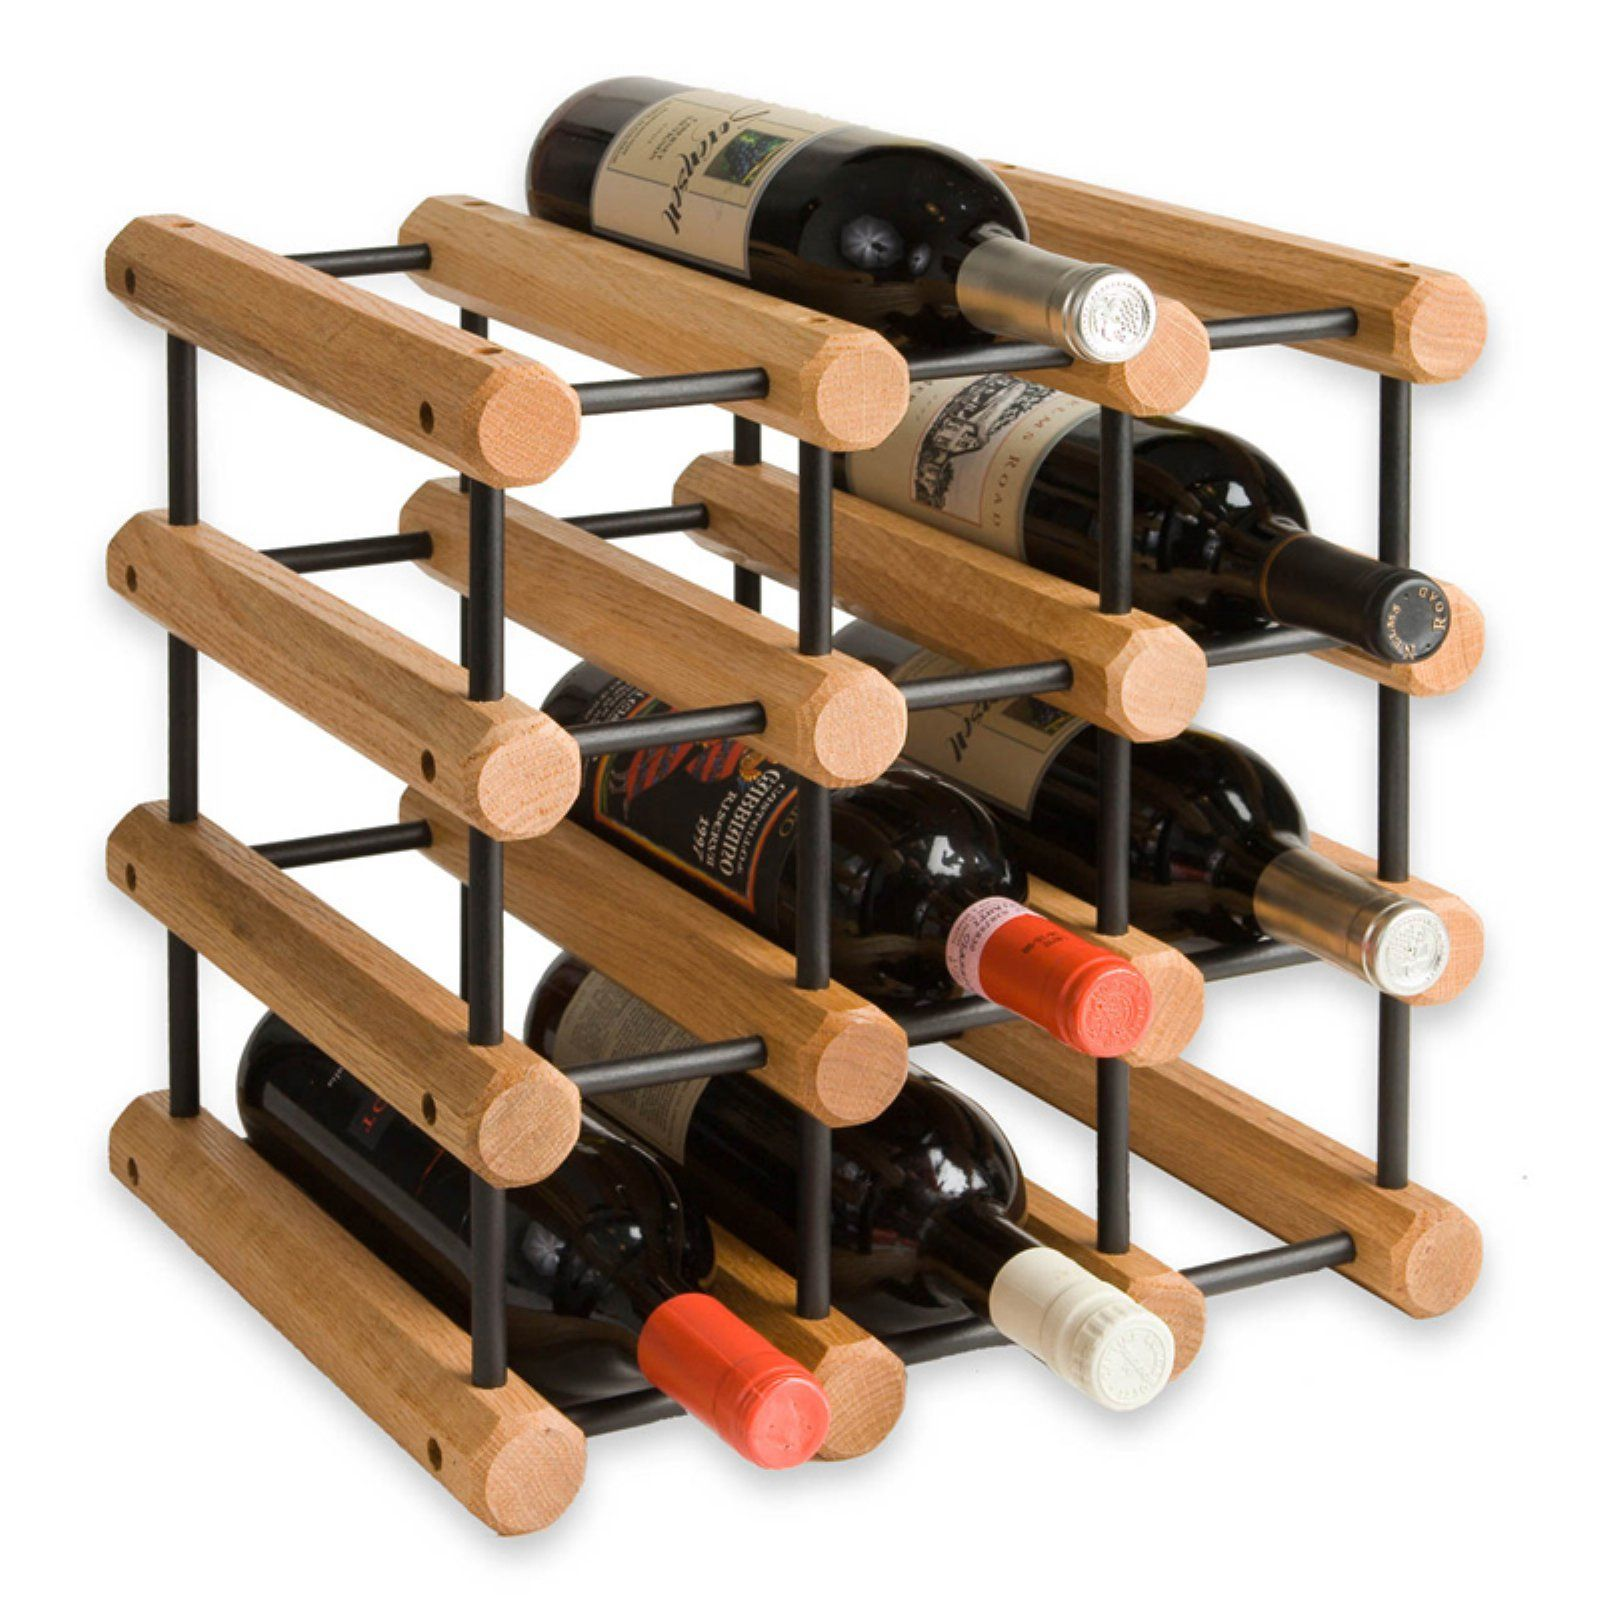 Wooden Octagonal Wine Rack 12 Or 40 Bottles 12 Bottles Wood Wine Racks Wine Rack Wine Rack Storage